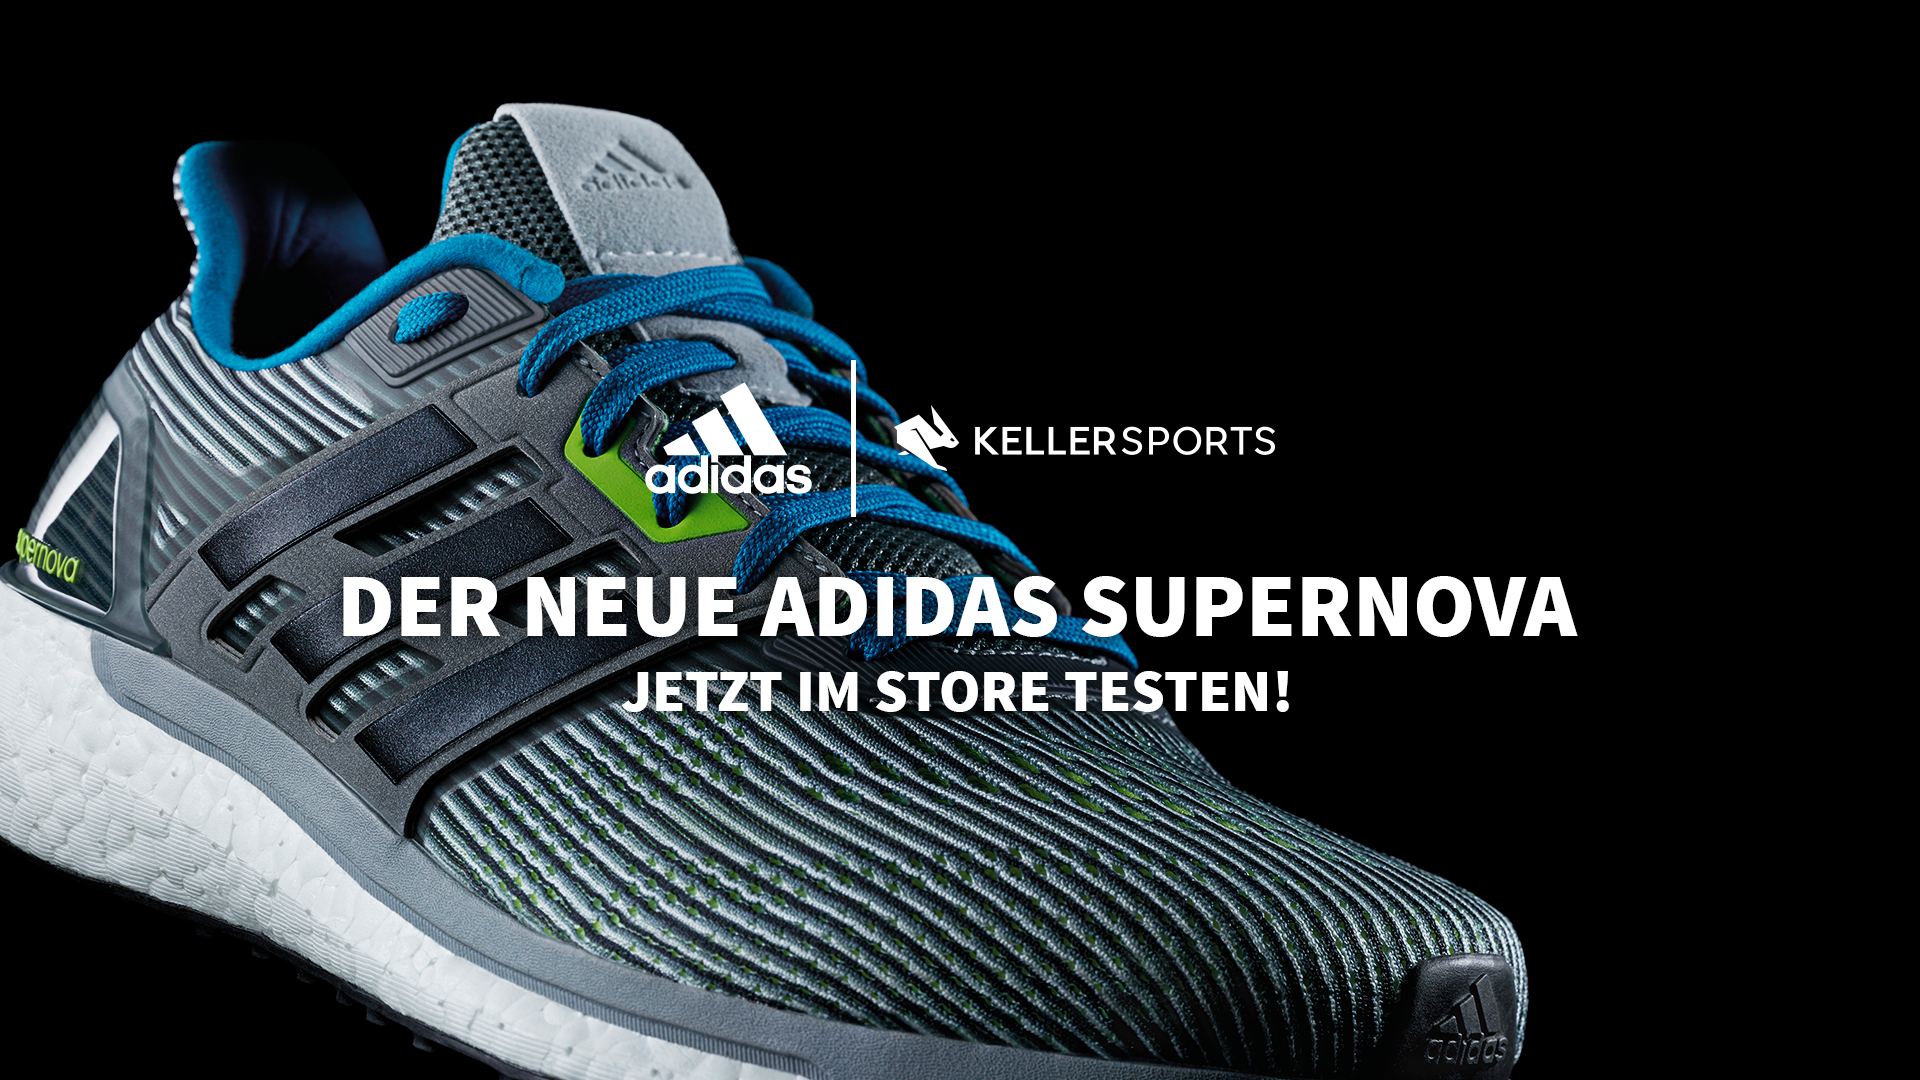 CONTROL YOUR ENERGY- DIE ADIDAS SUPERNOVA KOLLEKTION IM KELLER SPORTS STORE